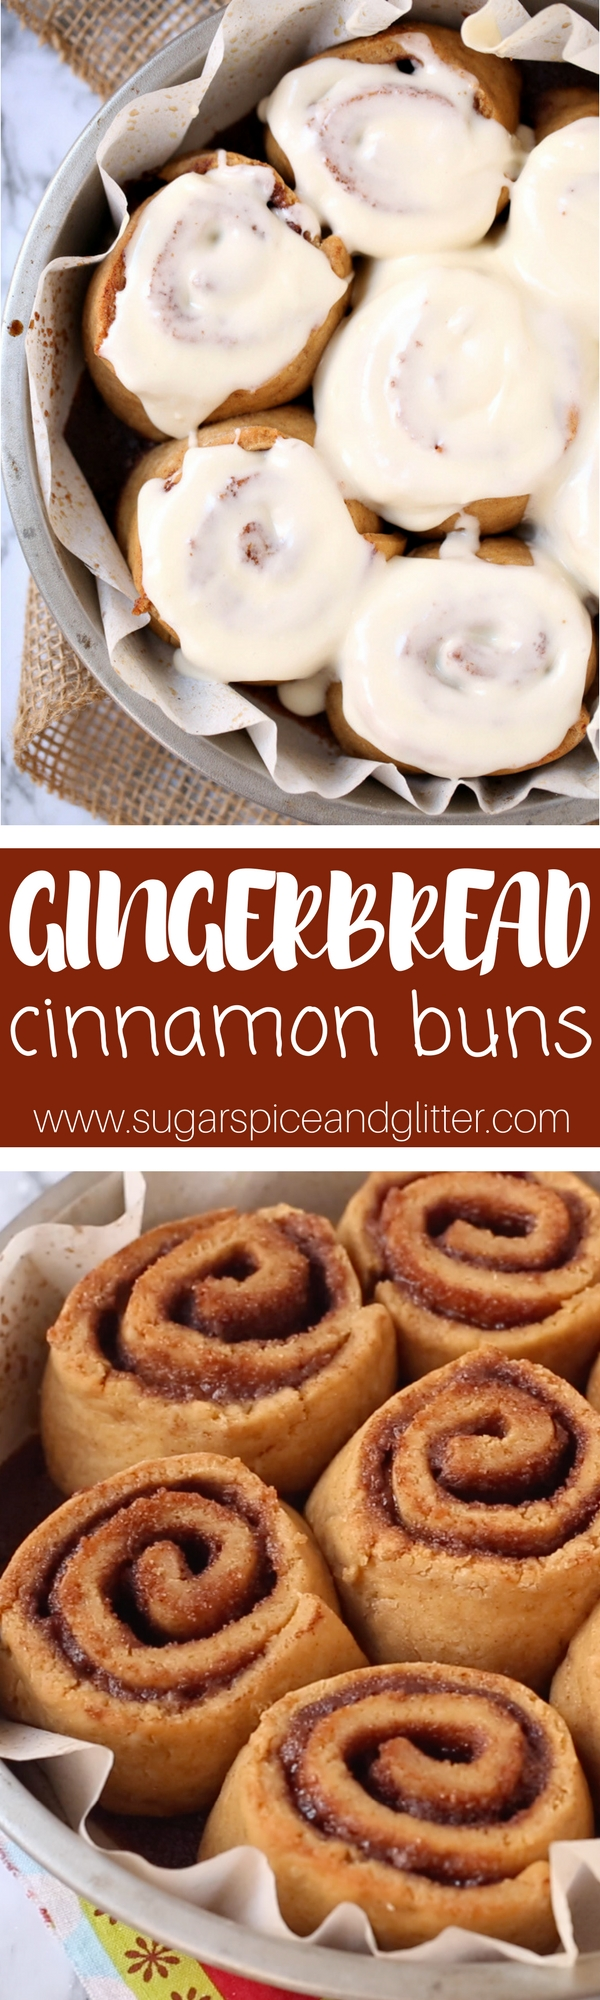 These homemade gingerbread cinnamon buns taste like Christmas! The perfect recipe for Christmas breakfast, these homemade sweet rolls have all of the flavor of a gingerbread cookie incorporated into fluffy, perfect cinnamon buns. Christmas brunch will never be the same!